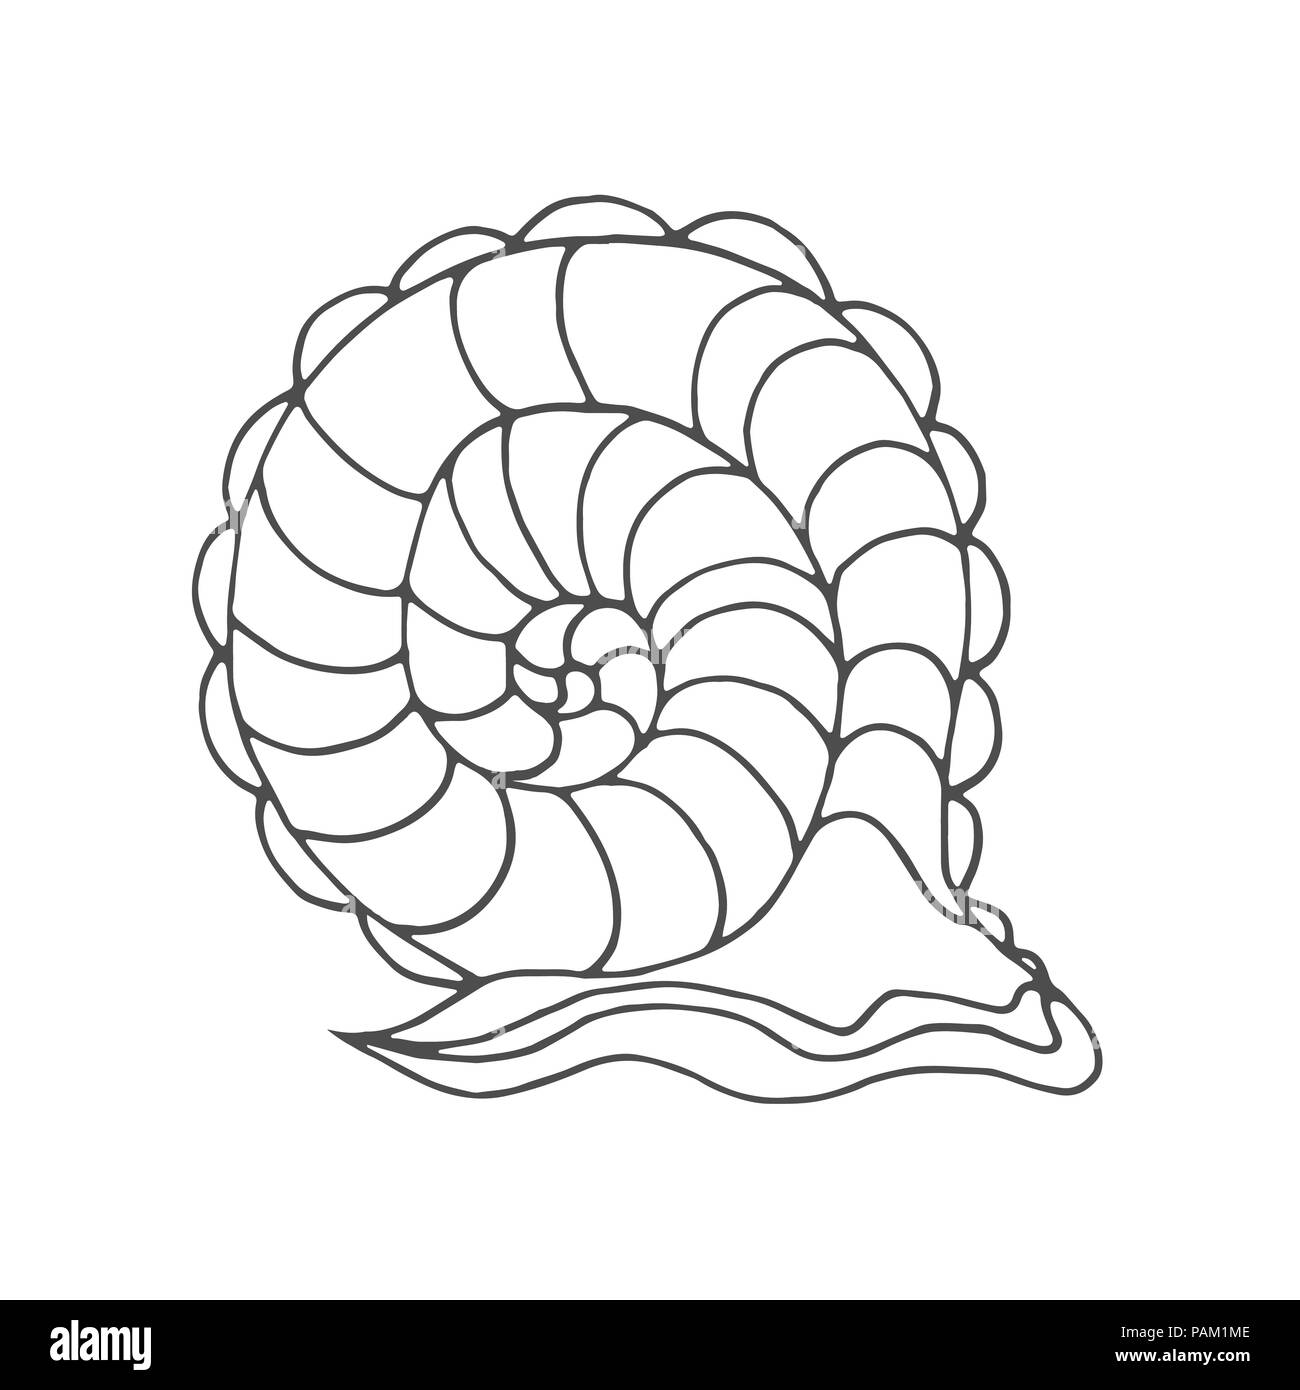 hight resolution of snail coloring page for children and adults pattern isolated cartoon character helix decorative element